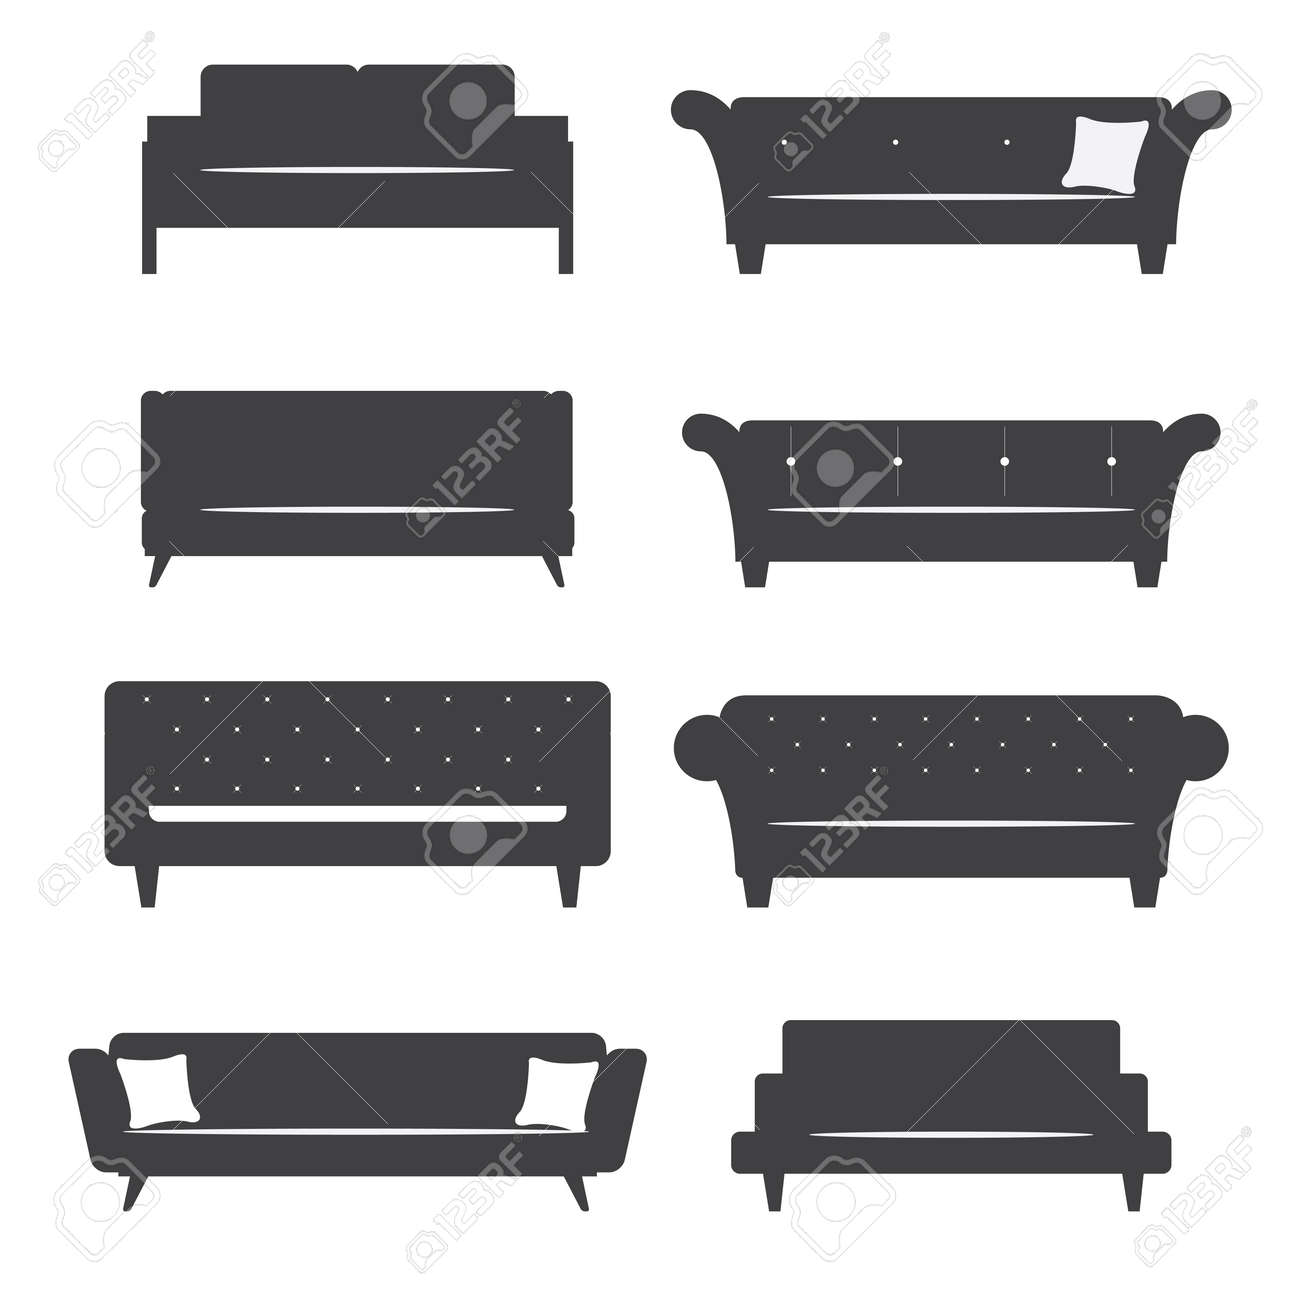 Flat design icon set of silhouette furniture chair and sofa. Vector. Illustration. - 41039284